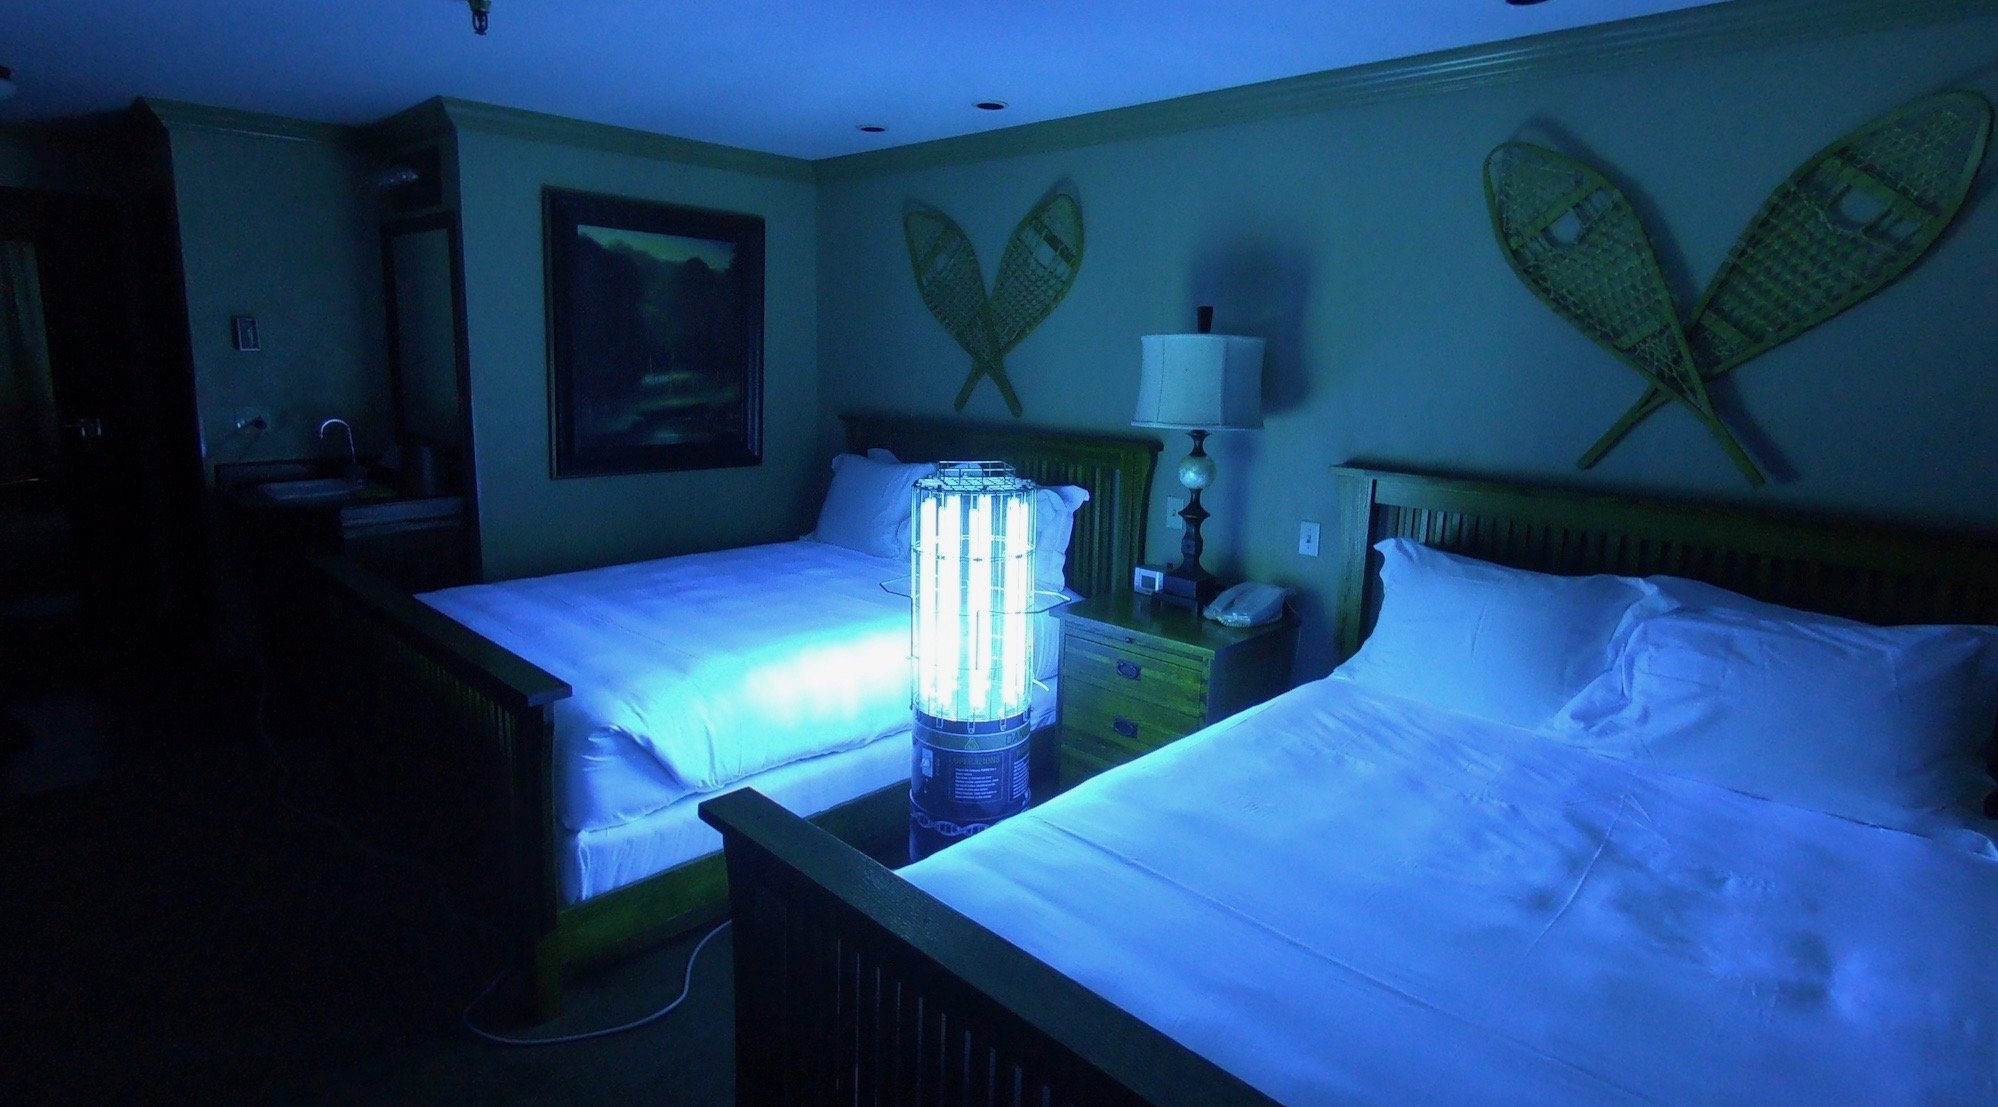 A dark hotel room with two double beds lit by the blue light of a UV disinfection light